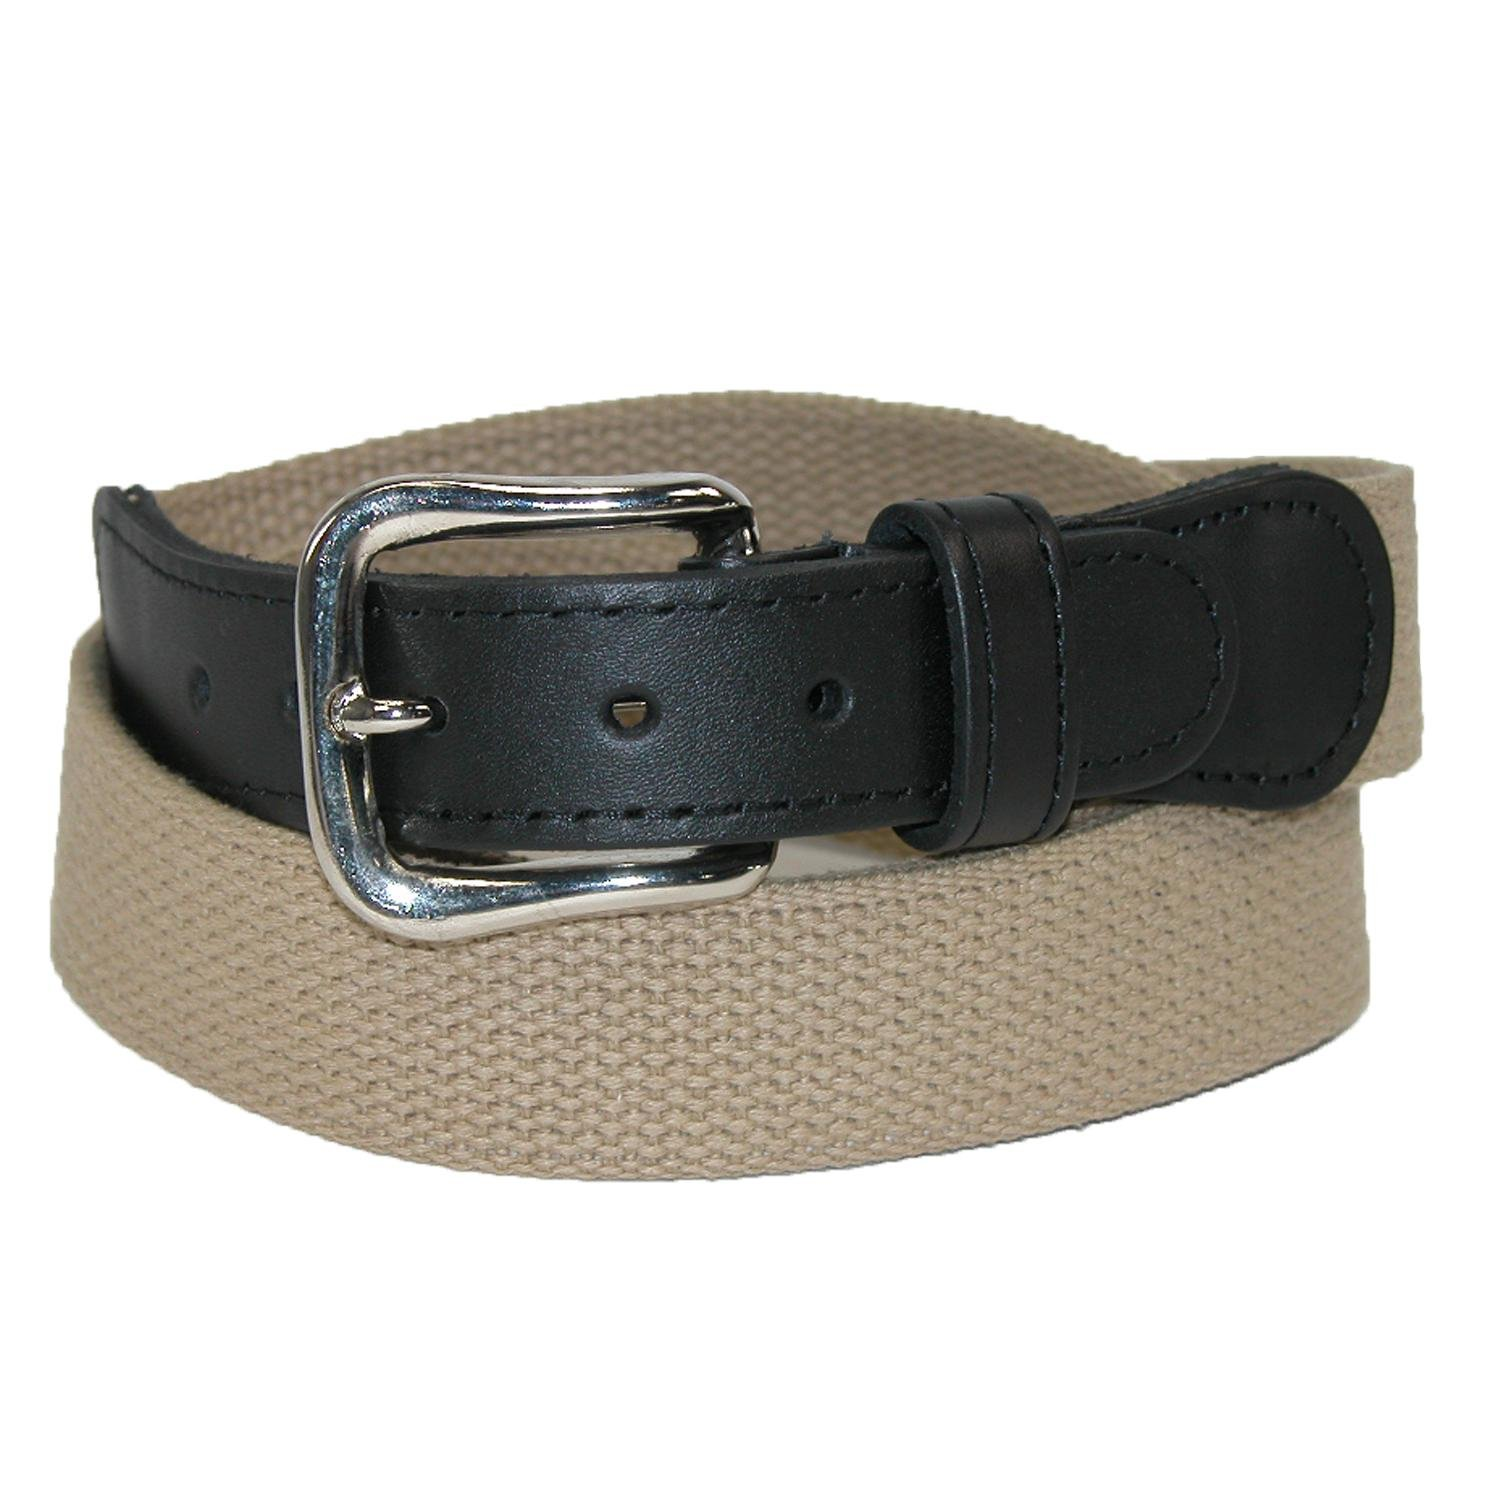 Boston Leather Men's Cotton Web Belt with Leather Tabs, 38, Tan